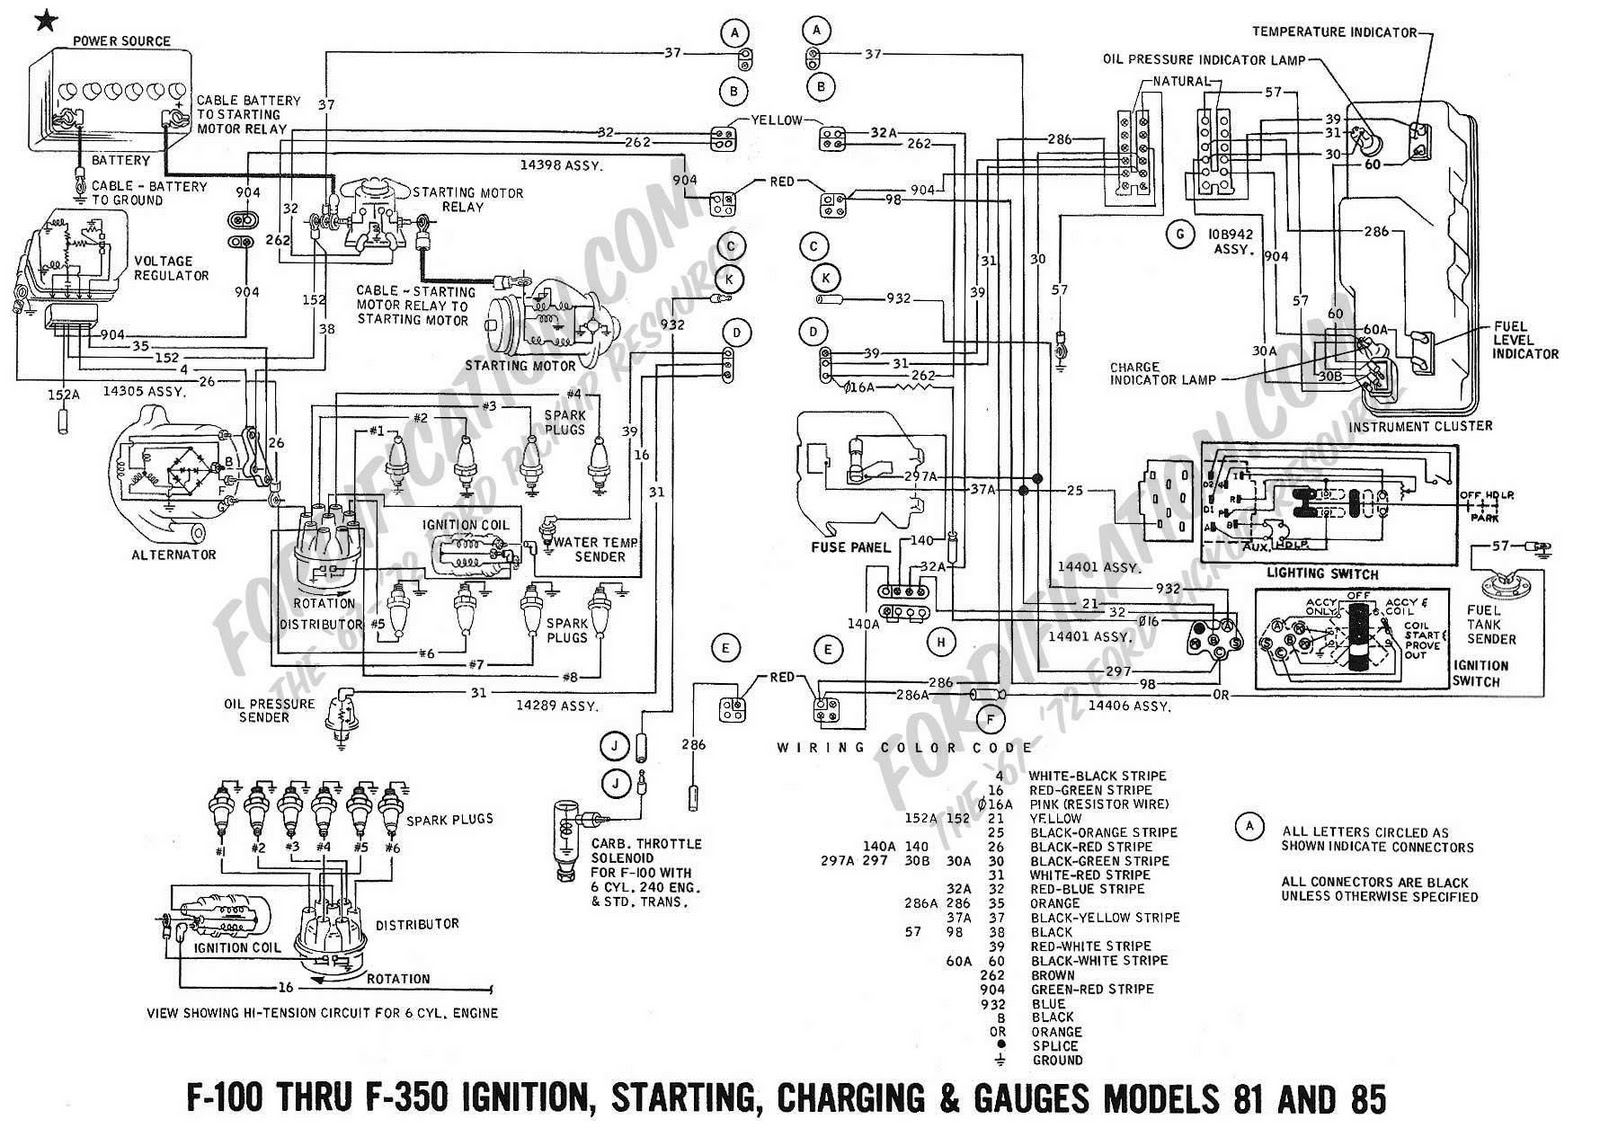 wiring diagram also electrical diagram 1966 ford fairlane